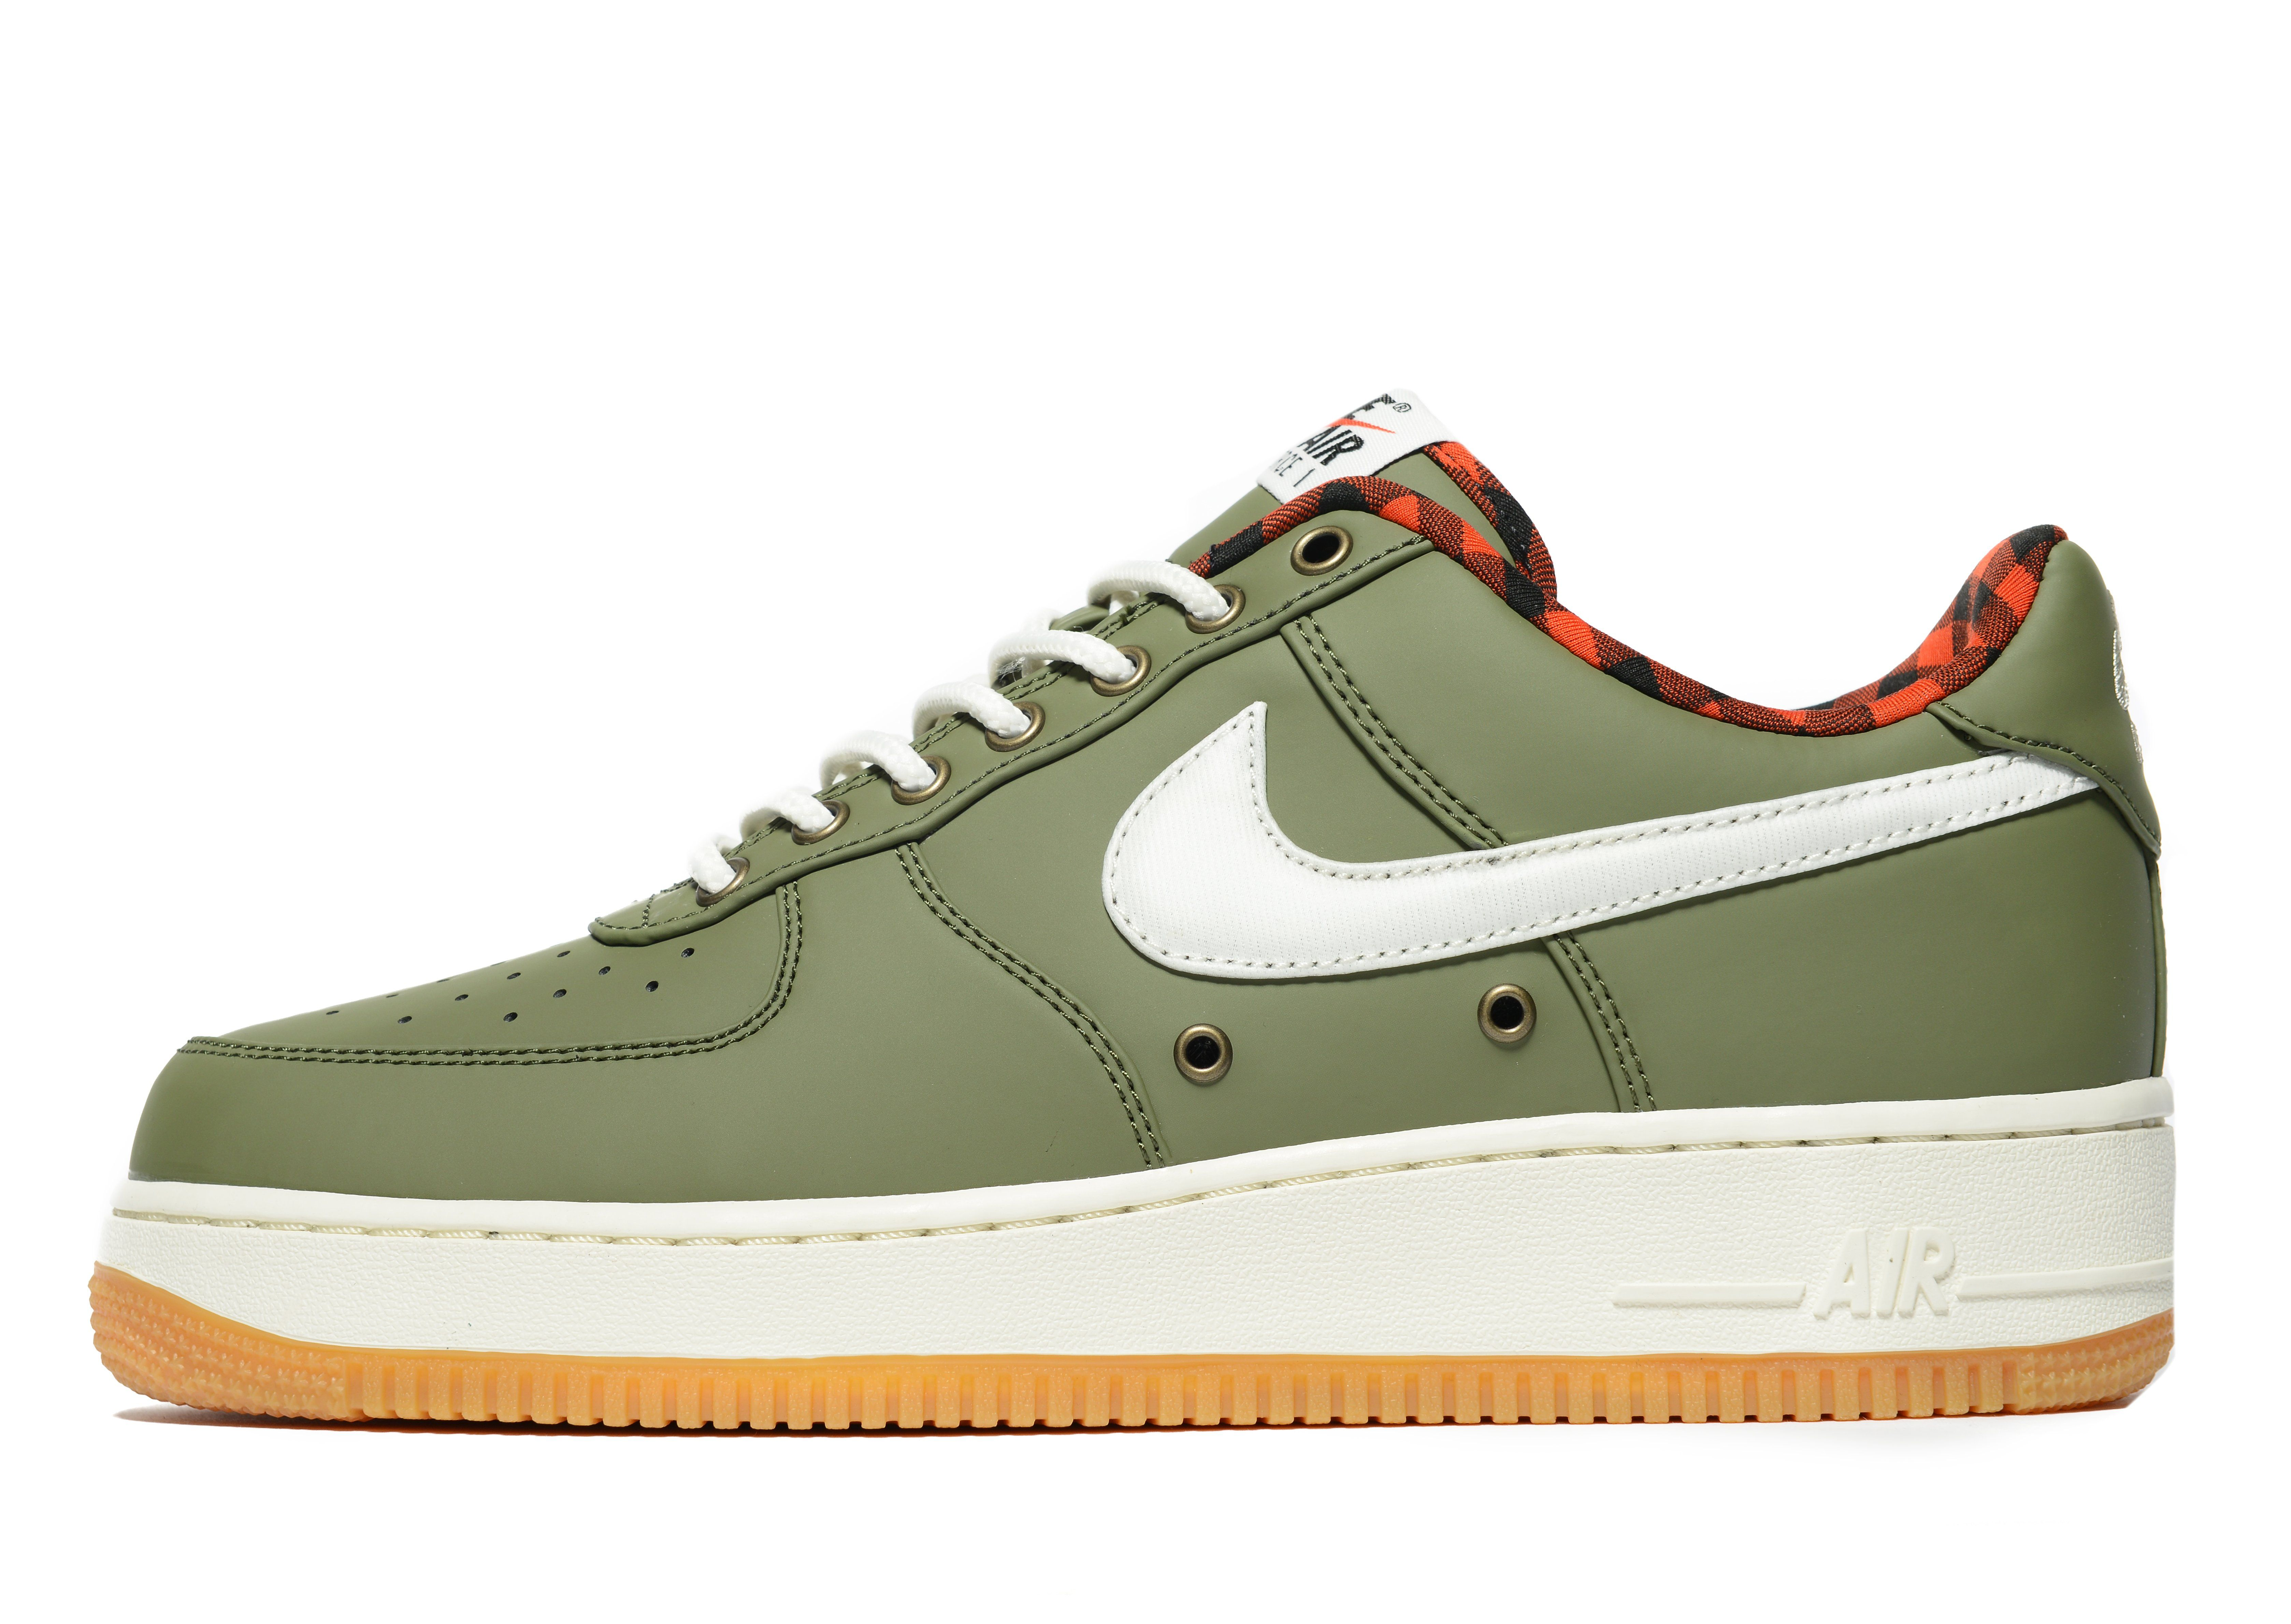 0954c0246982 durable service Nike Air Force 1 LV8